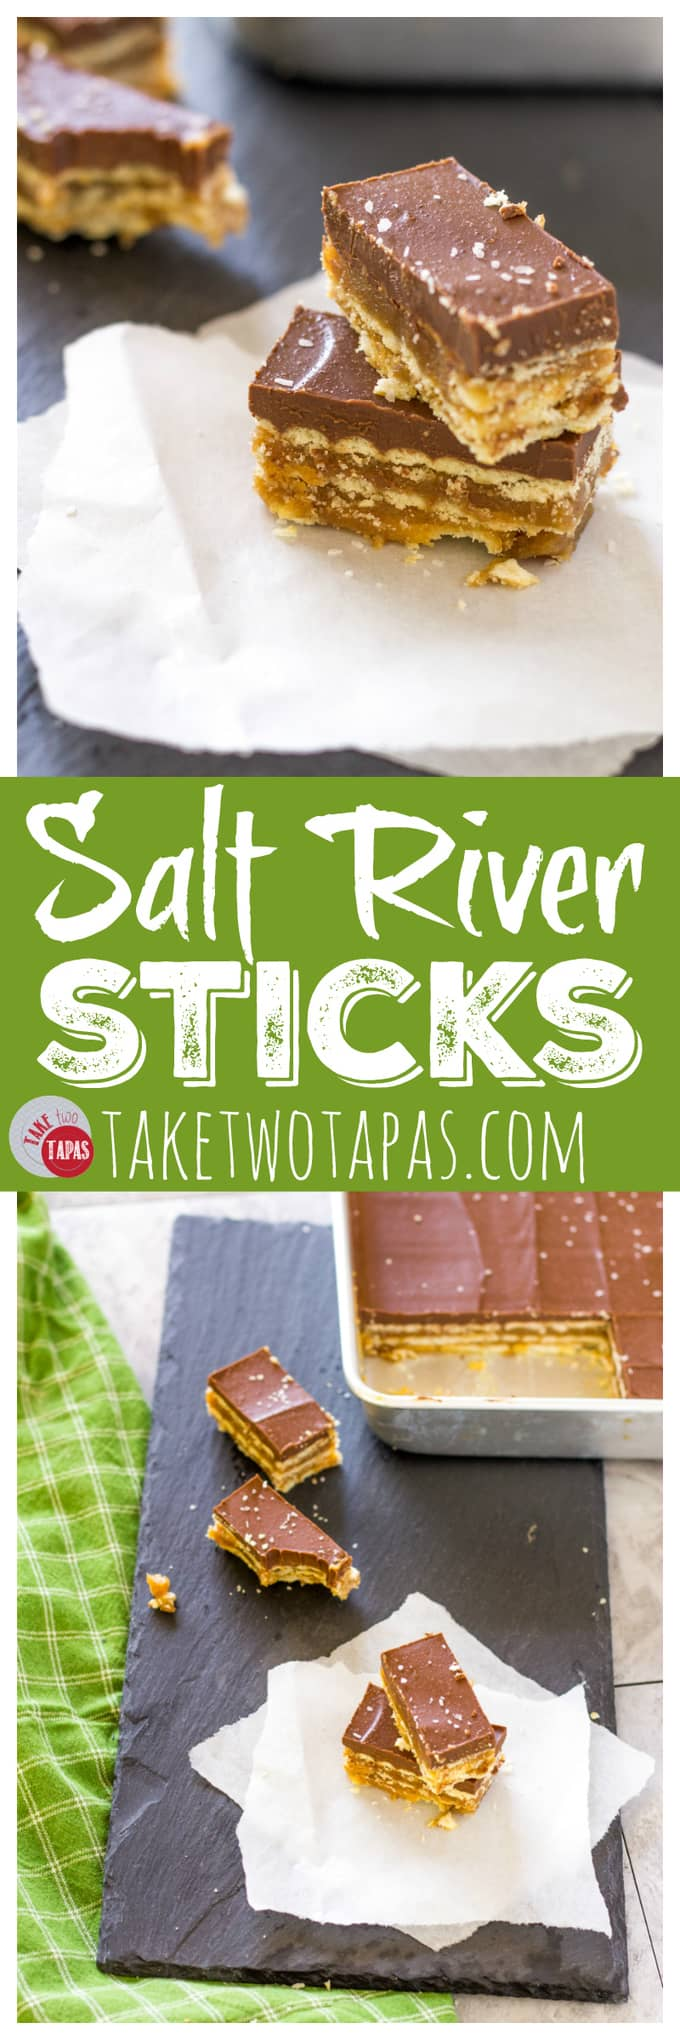 Salt River Sticks topped with Dark Chocolate | Take Two Tapas | #SaltRiverBars #SaltRiverSticks #Butterscotch #Caramel #Crackers #LayeredDessert #ArizonaFood #LibertyMarket #CrackerToffeeBars